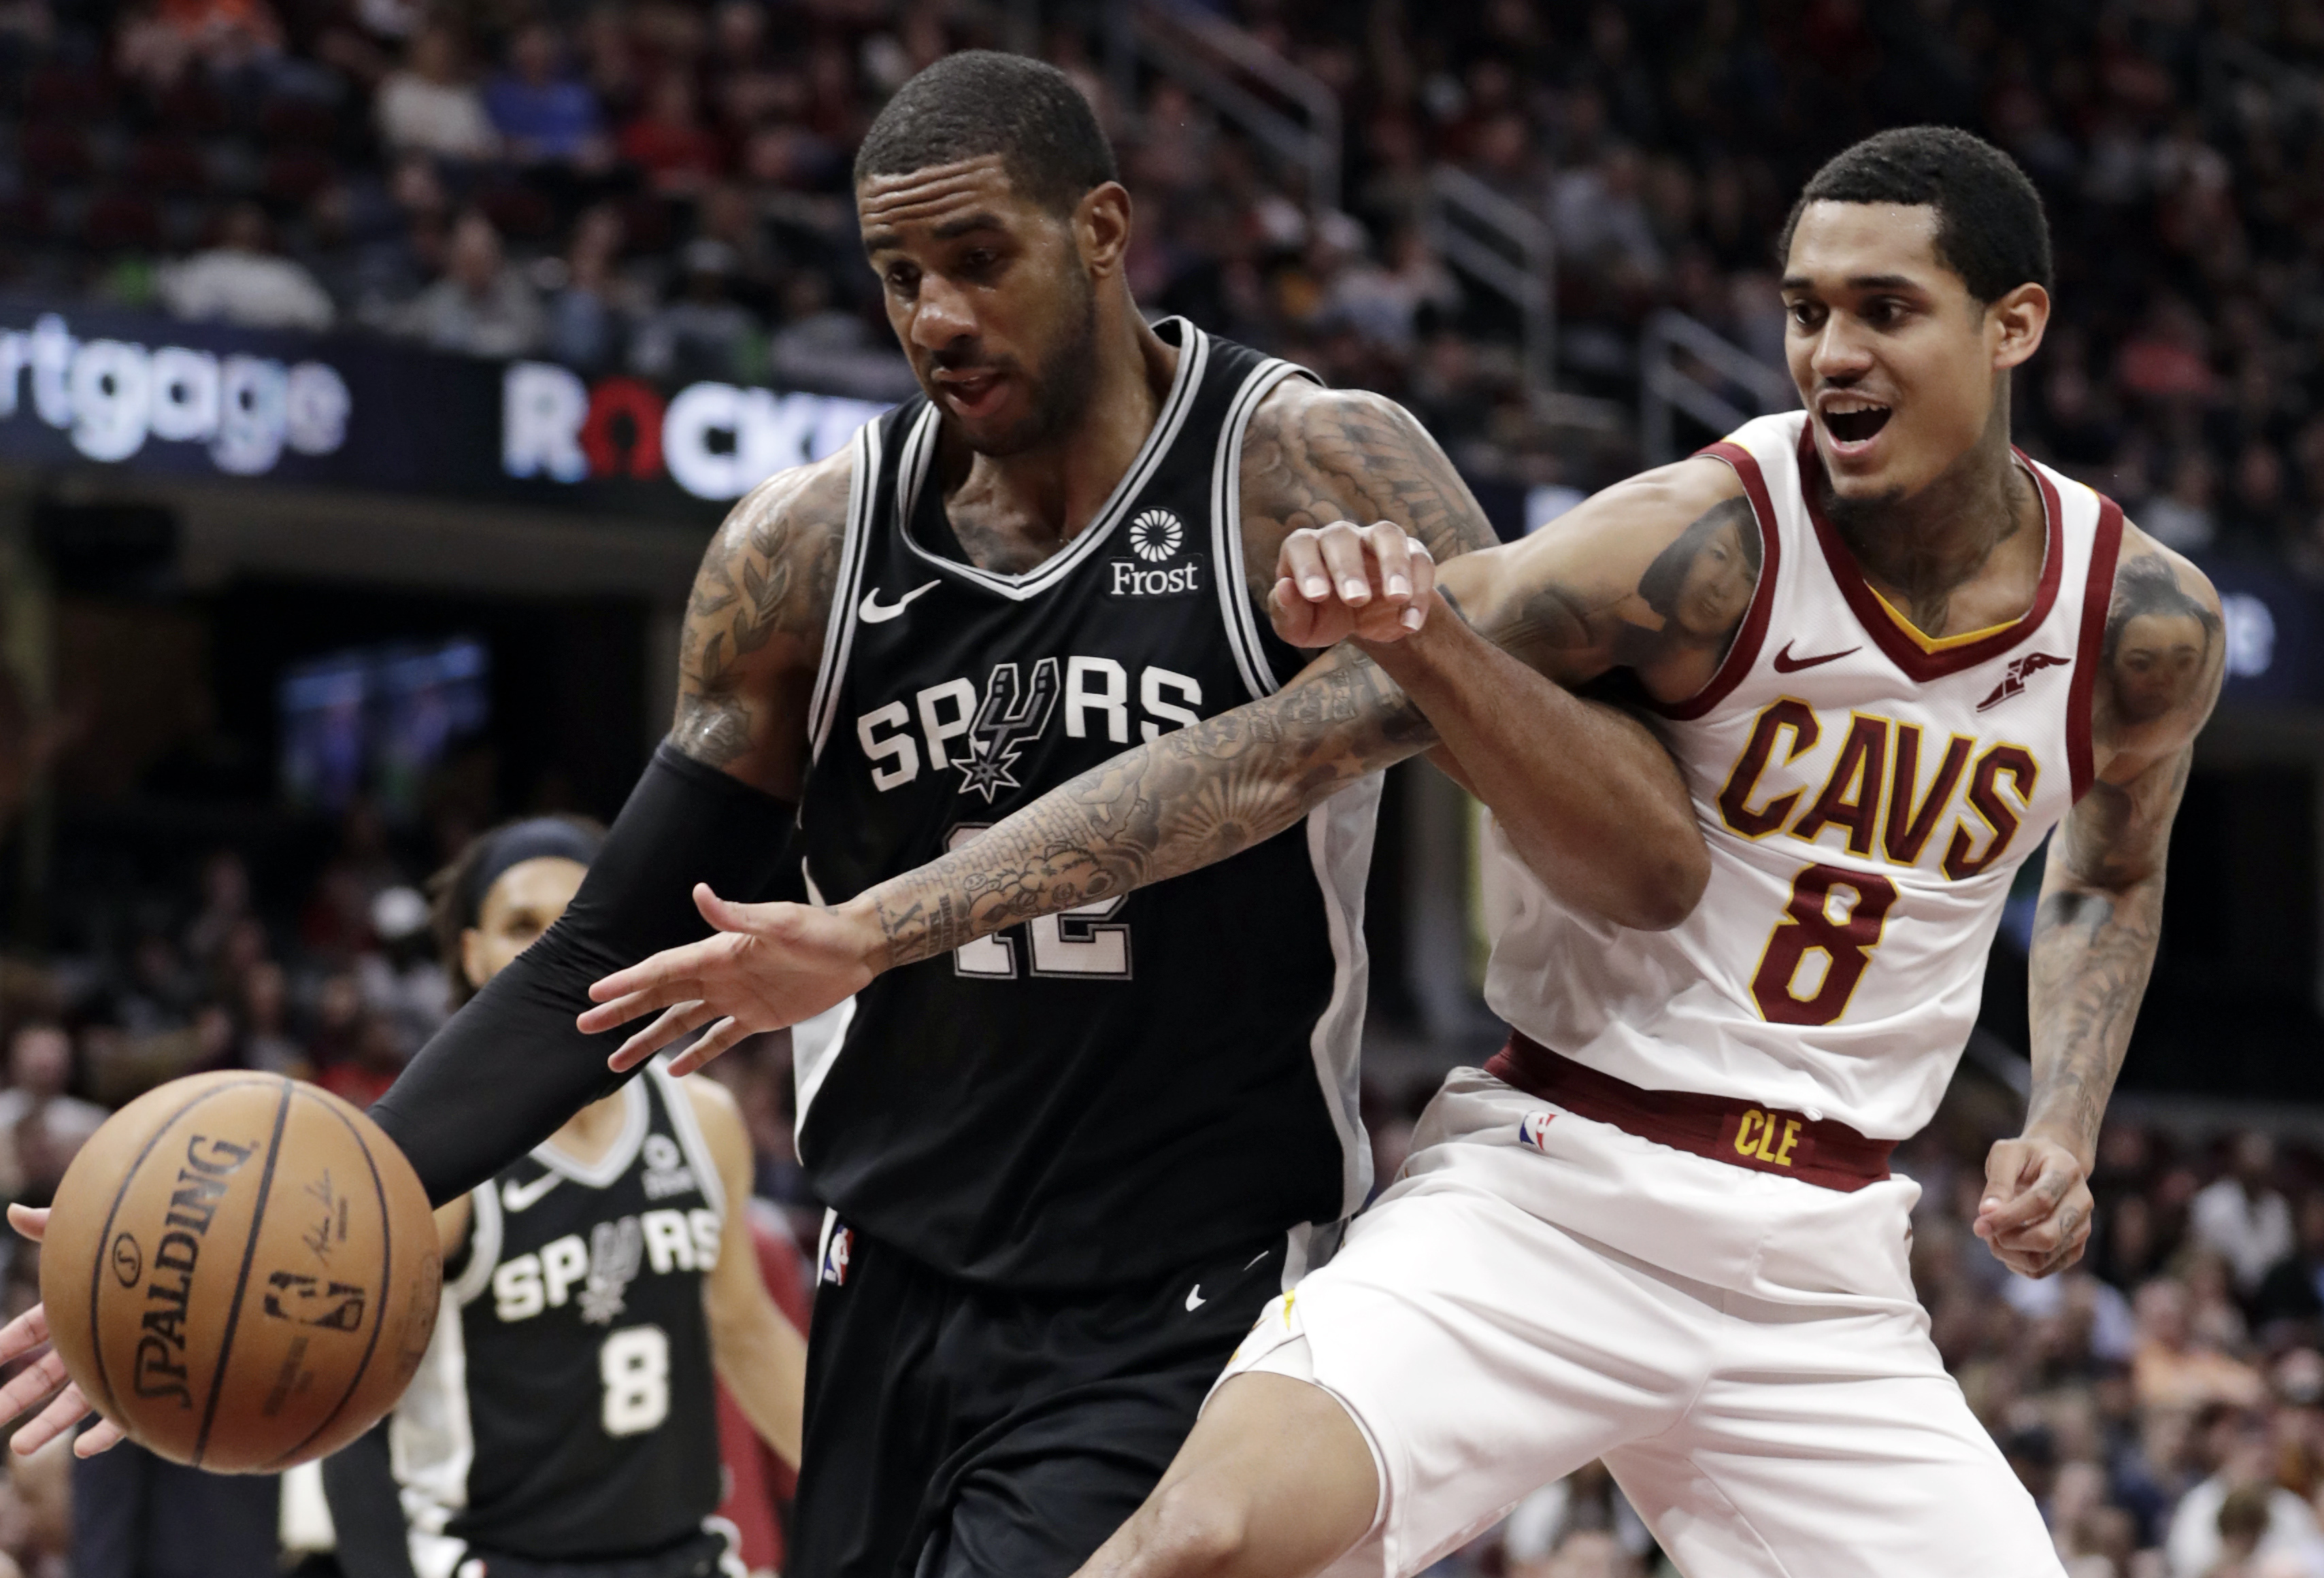 Aldridge's double-double paces Spurs to 112-90 win over Cavs